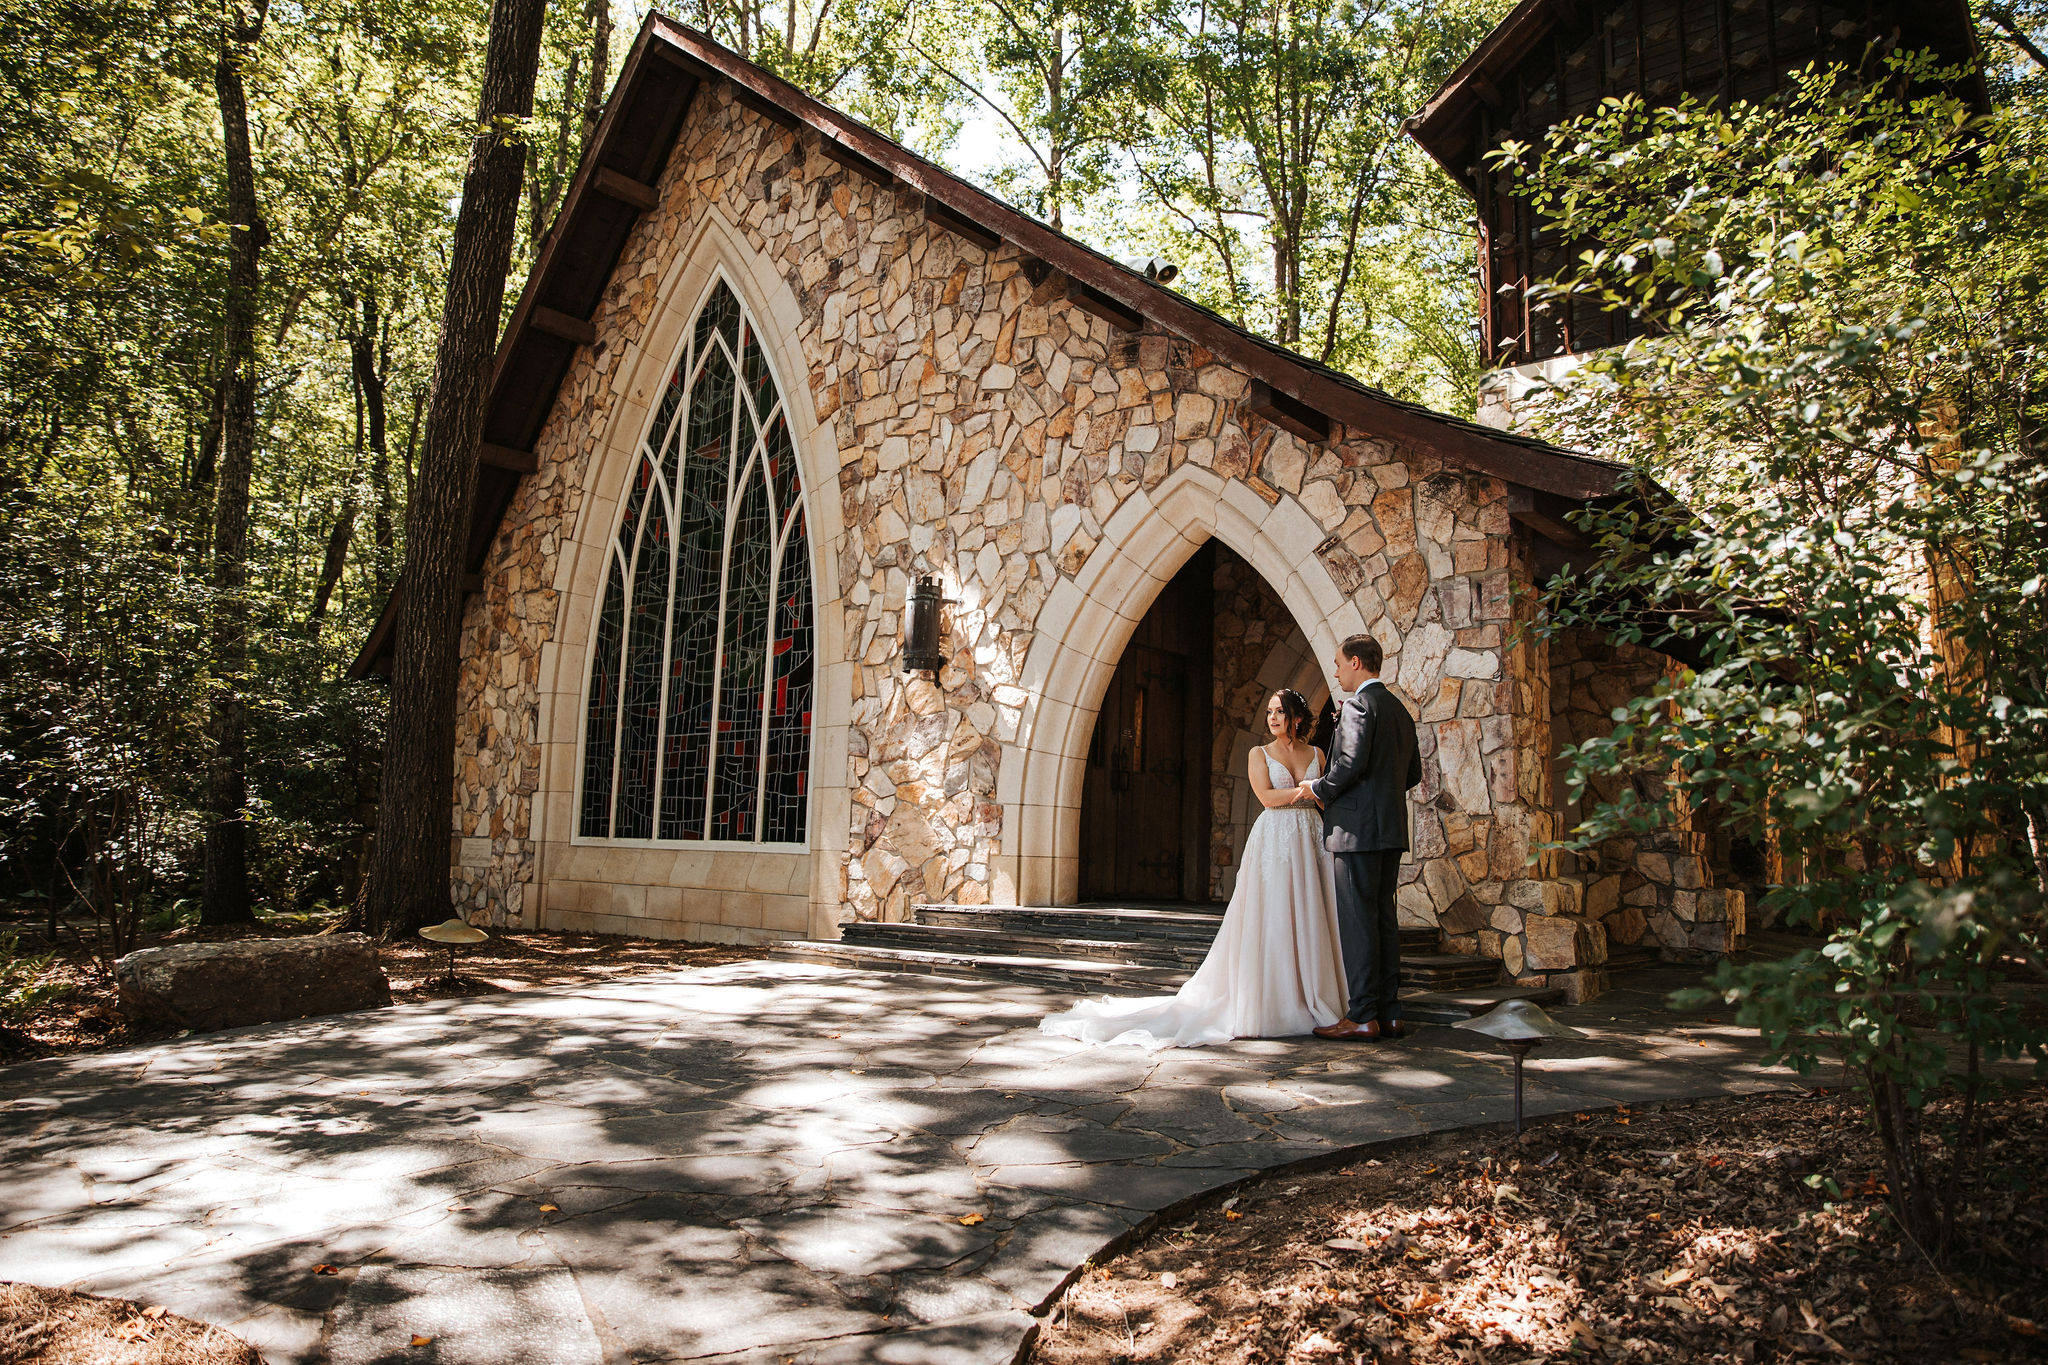 A wedding couple is standing in front of the Ida Cason Memorial Chapel at Callaway Gardens.